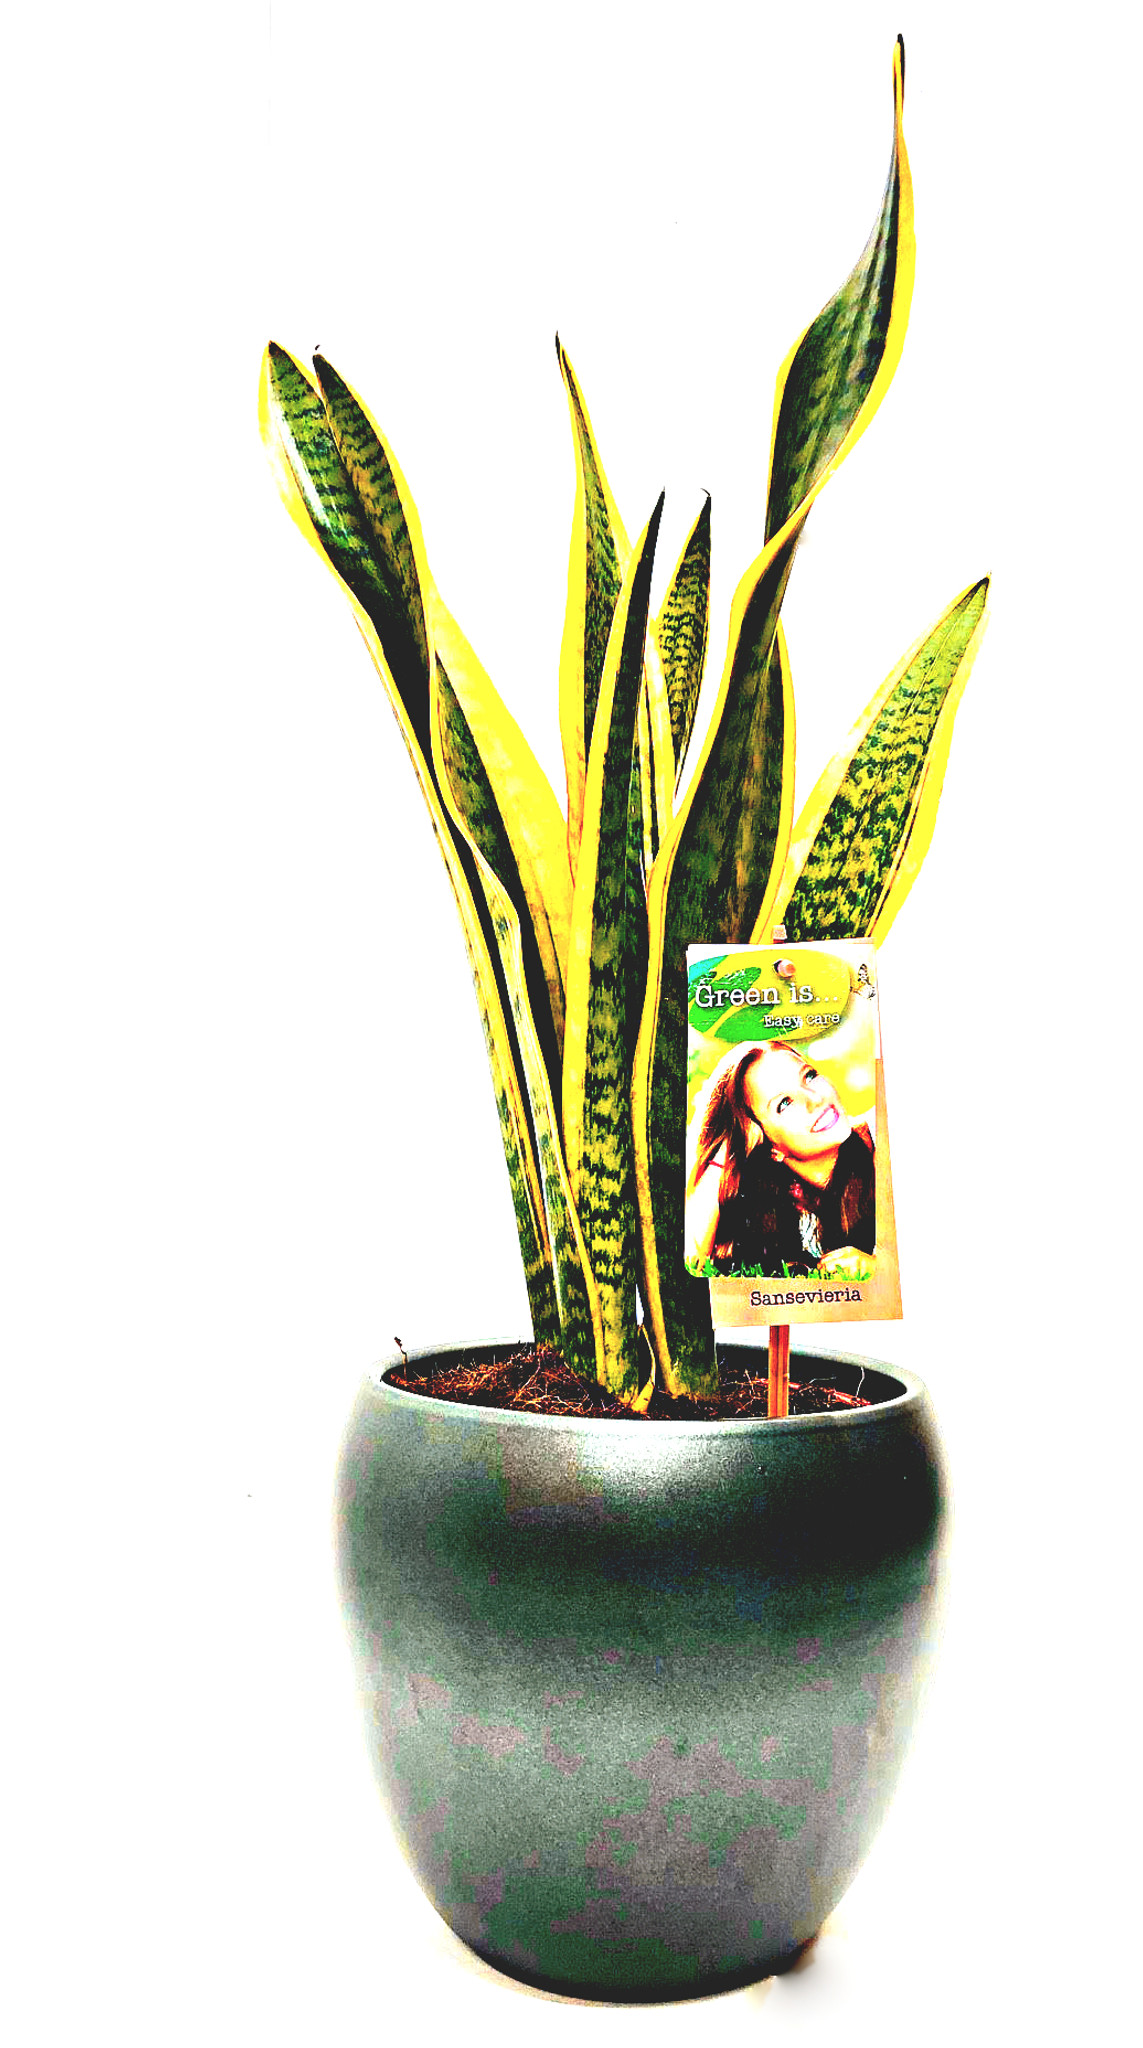 Other options : Large  Mother's in law plant, sansevieria in black  ceramic pot.